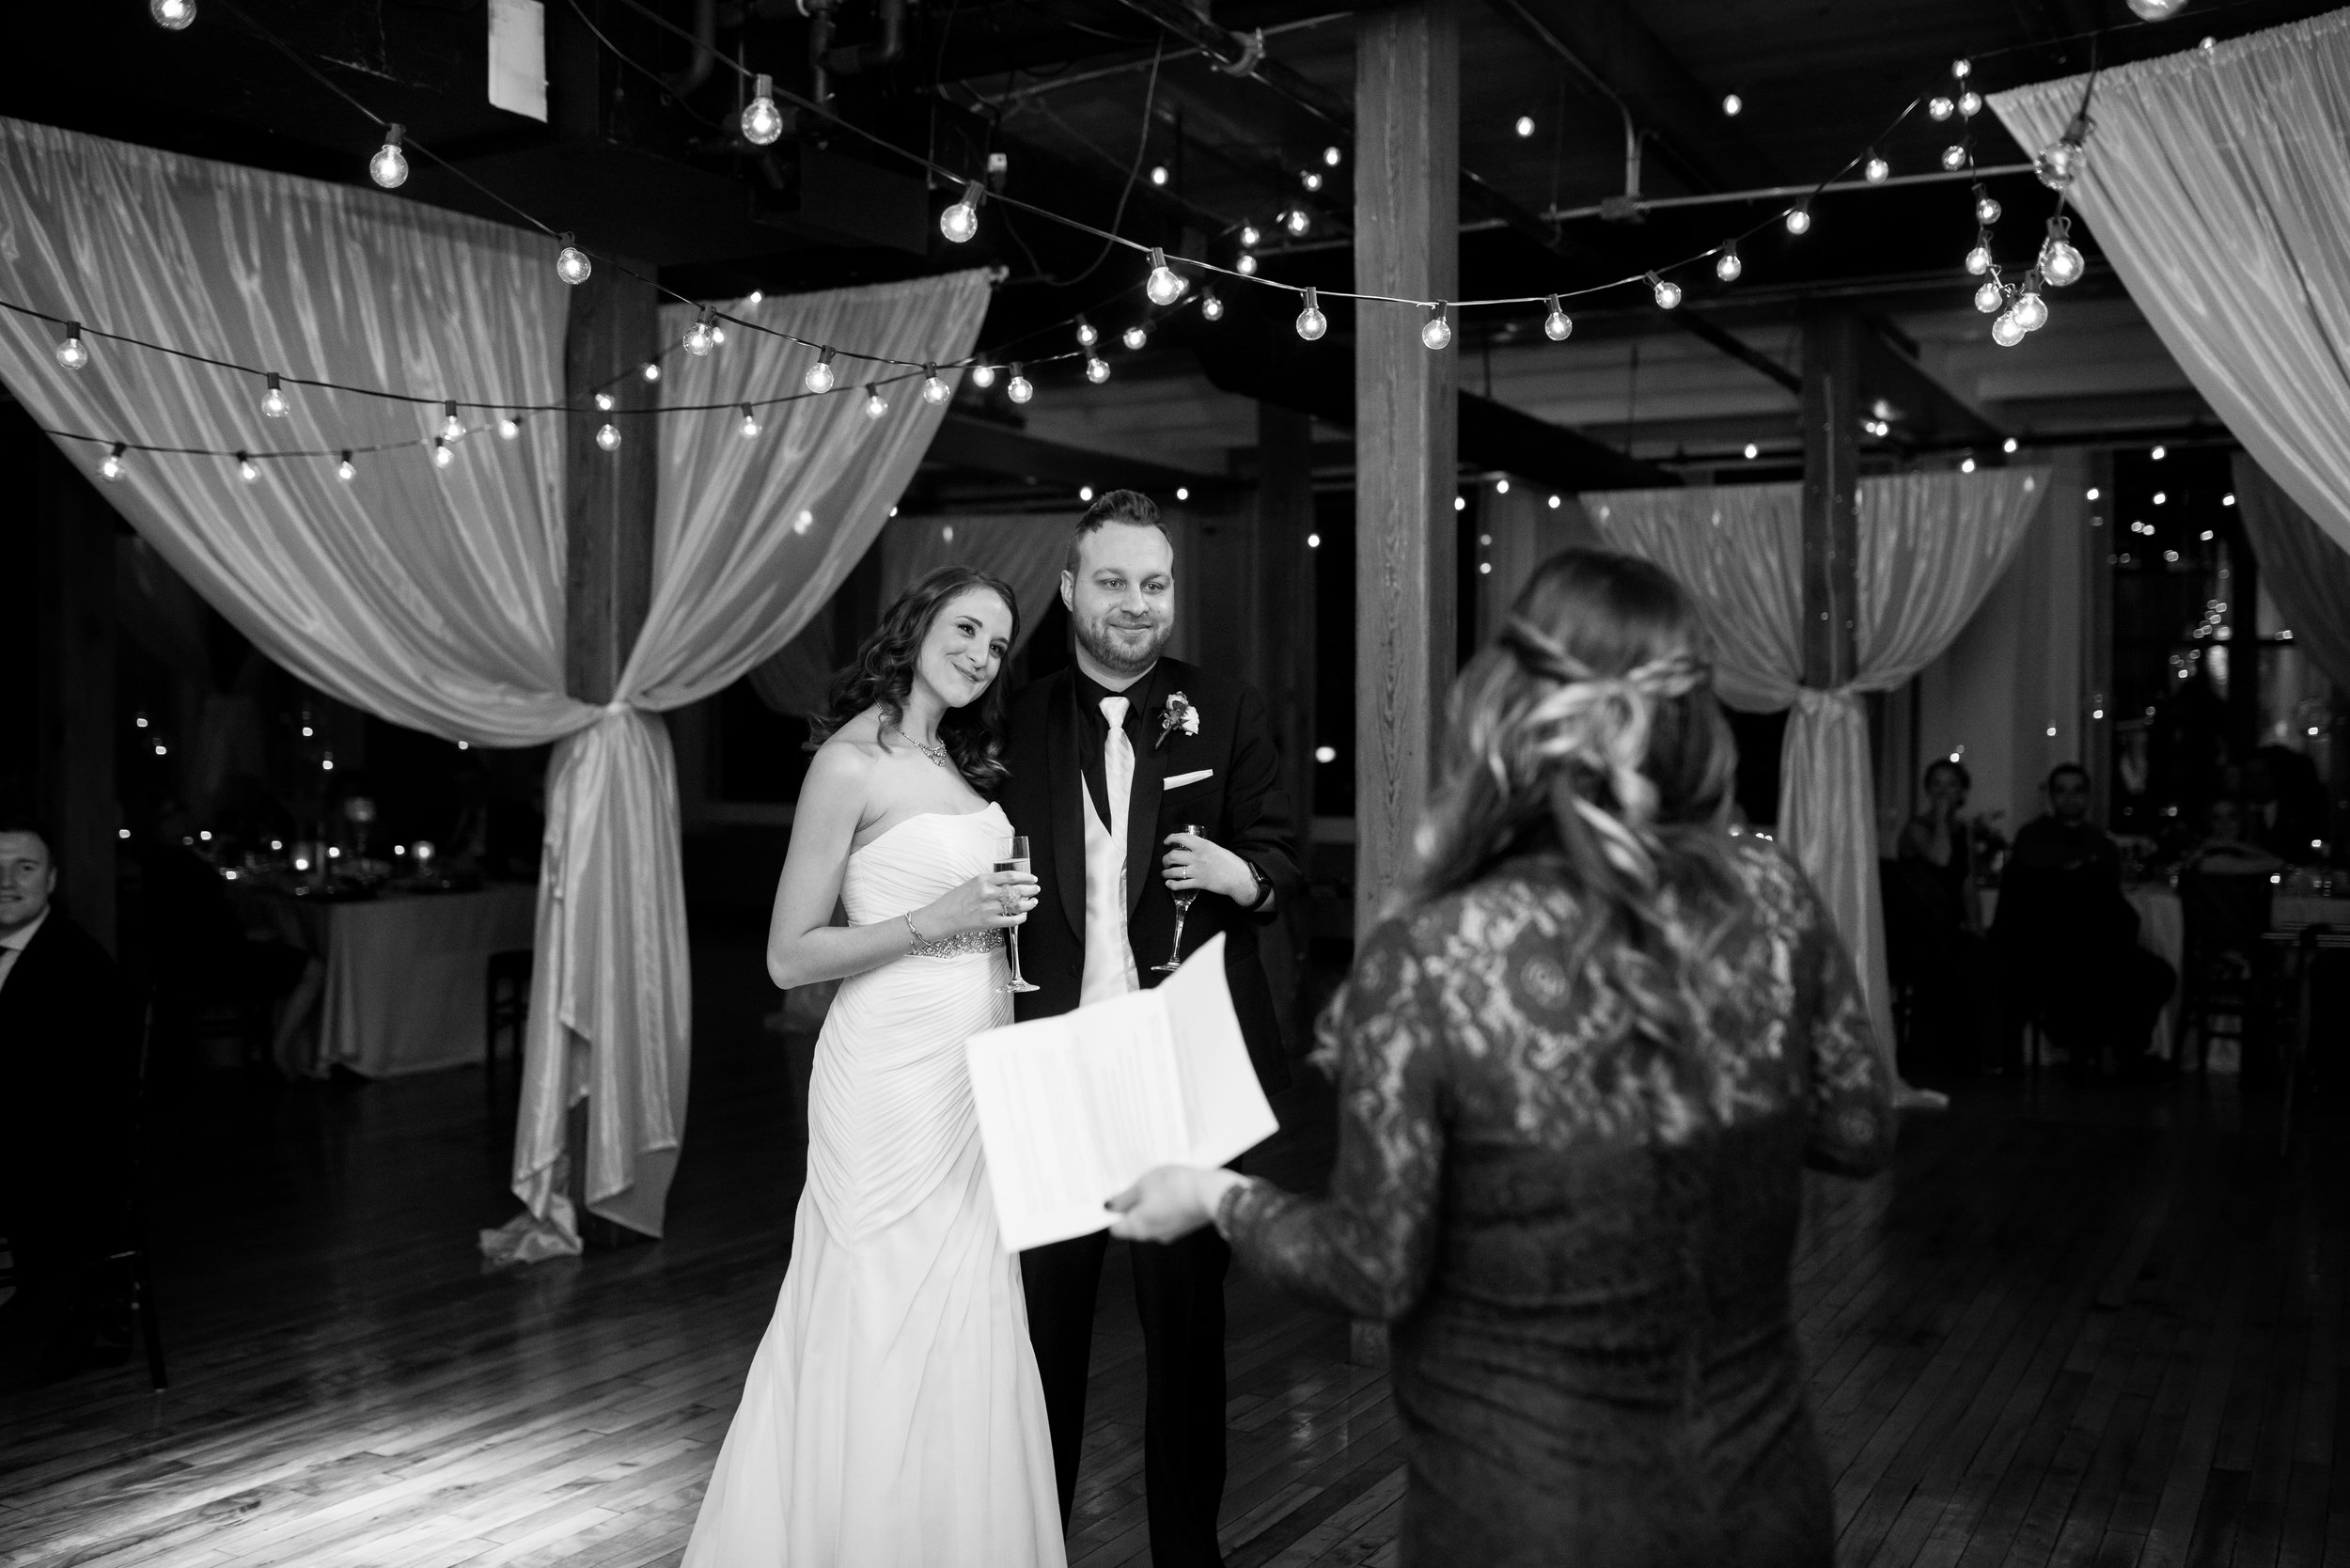 LUV LENS_WEDDING_EMILY AND ANDREW-362.jpg